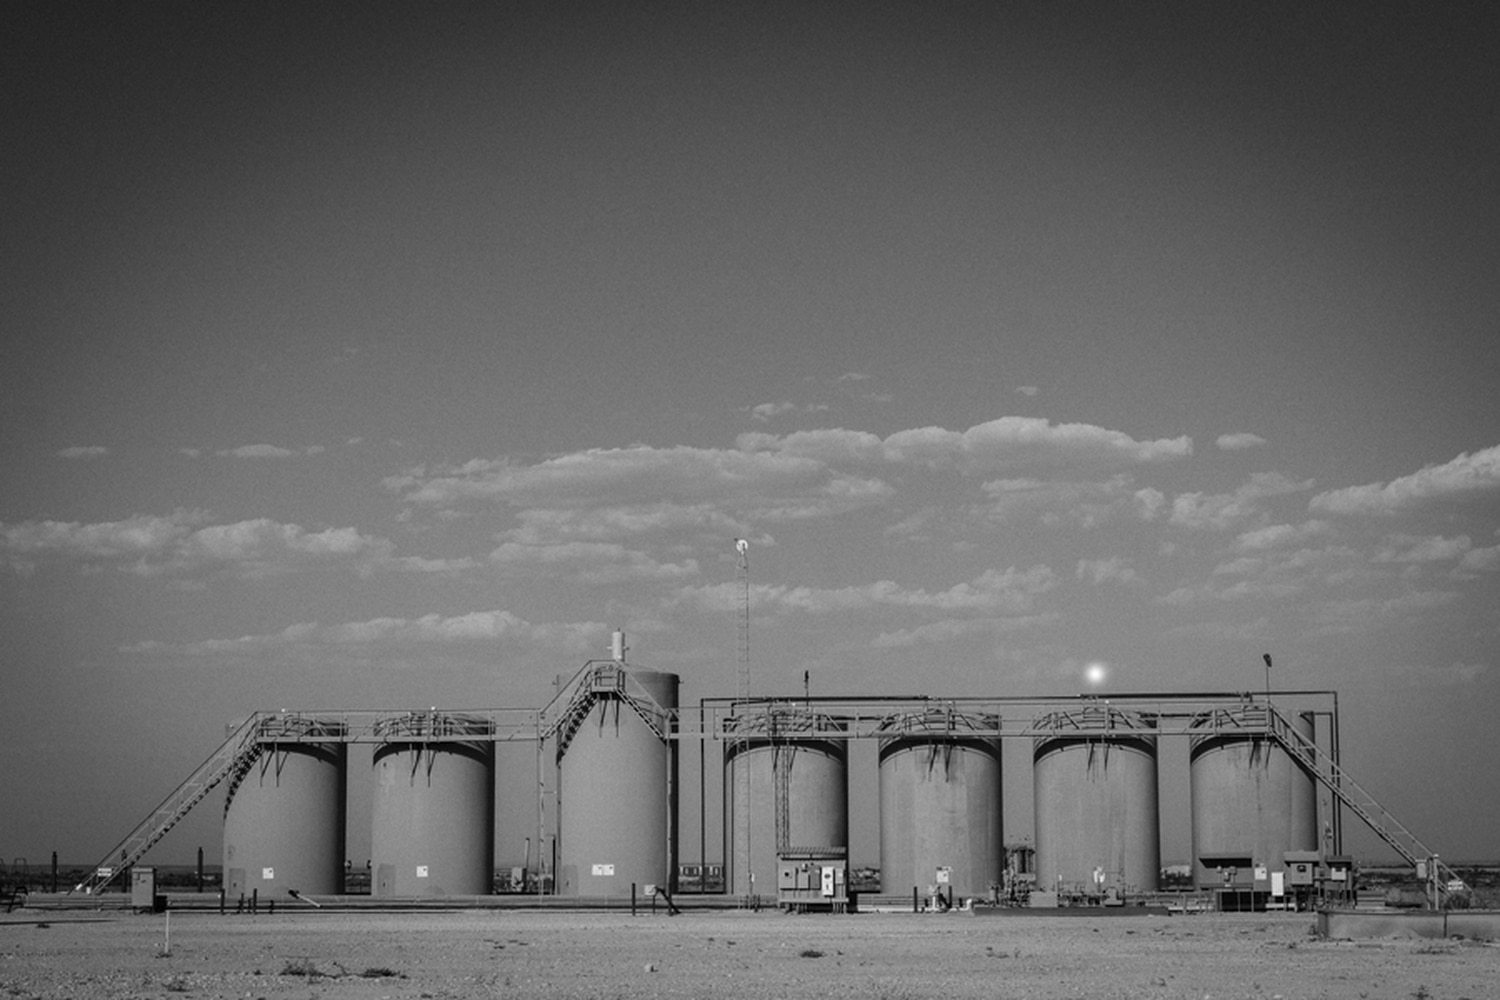 Petroleum and produced water storage tanks in the Permian Basin south of Lovington, New Mexico.